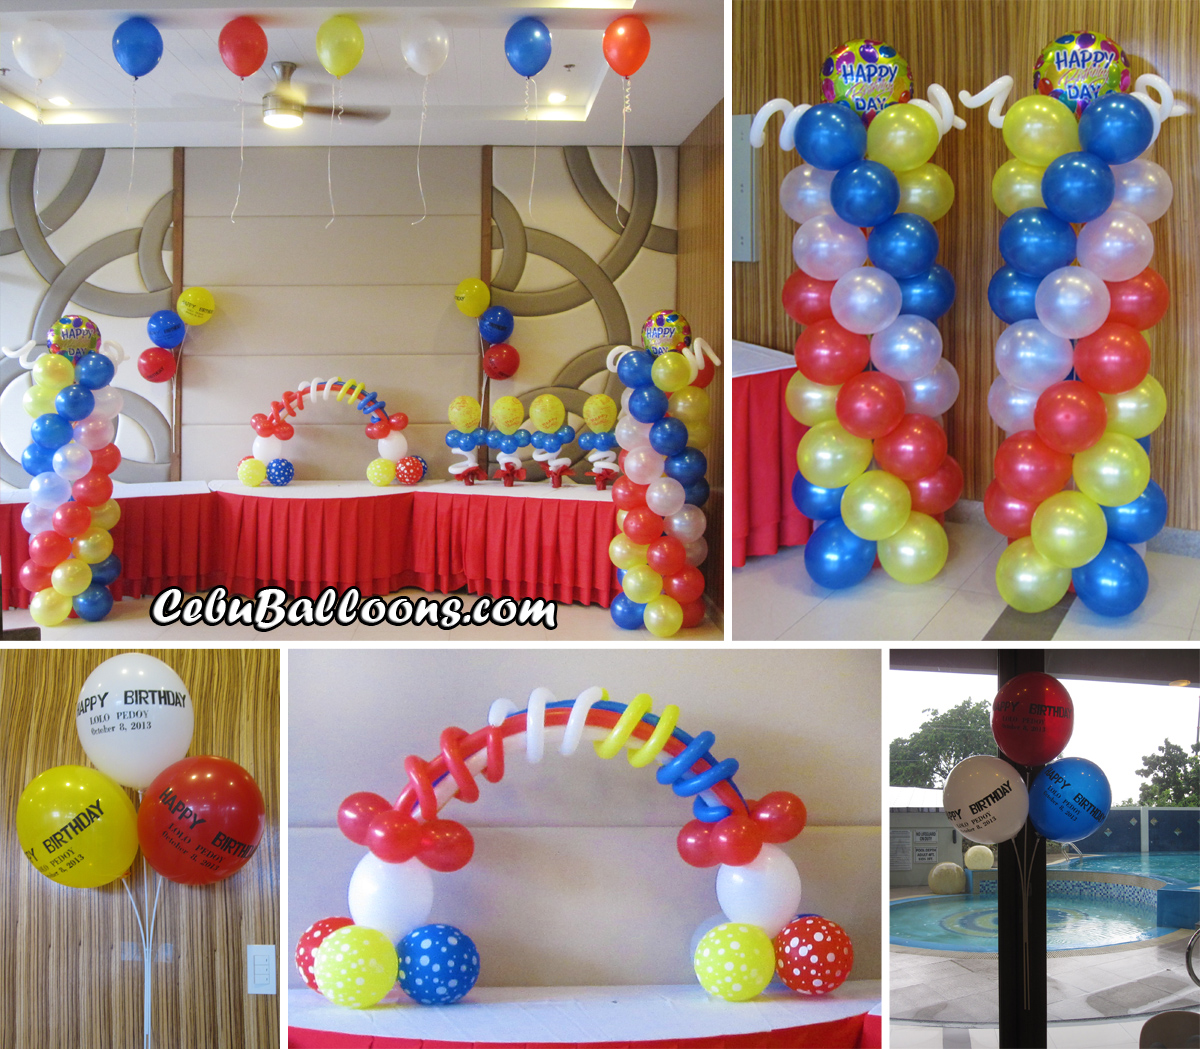 90th birthday balloon decoration at avalon ayala cebu for Balloon decoration for birthday party